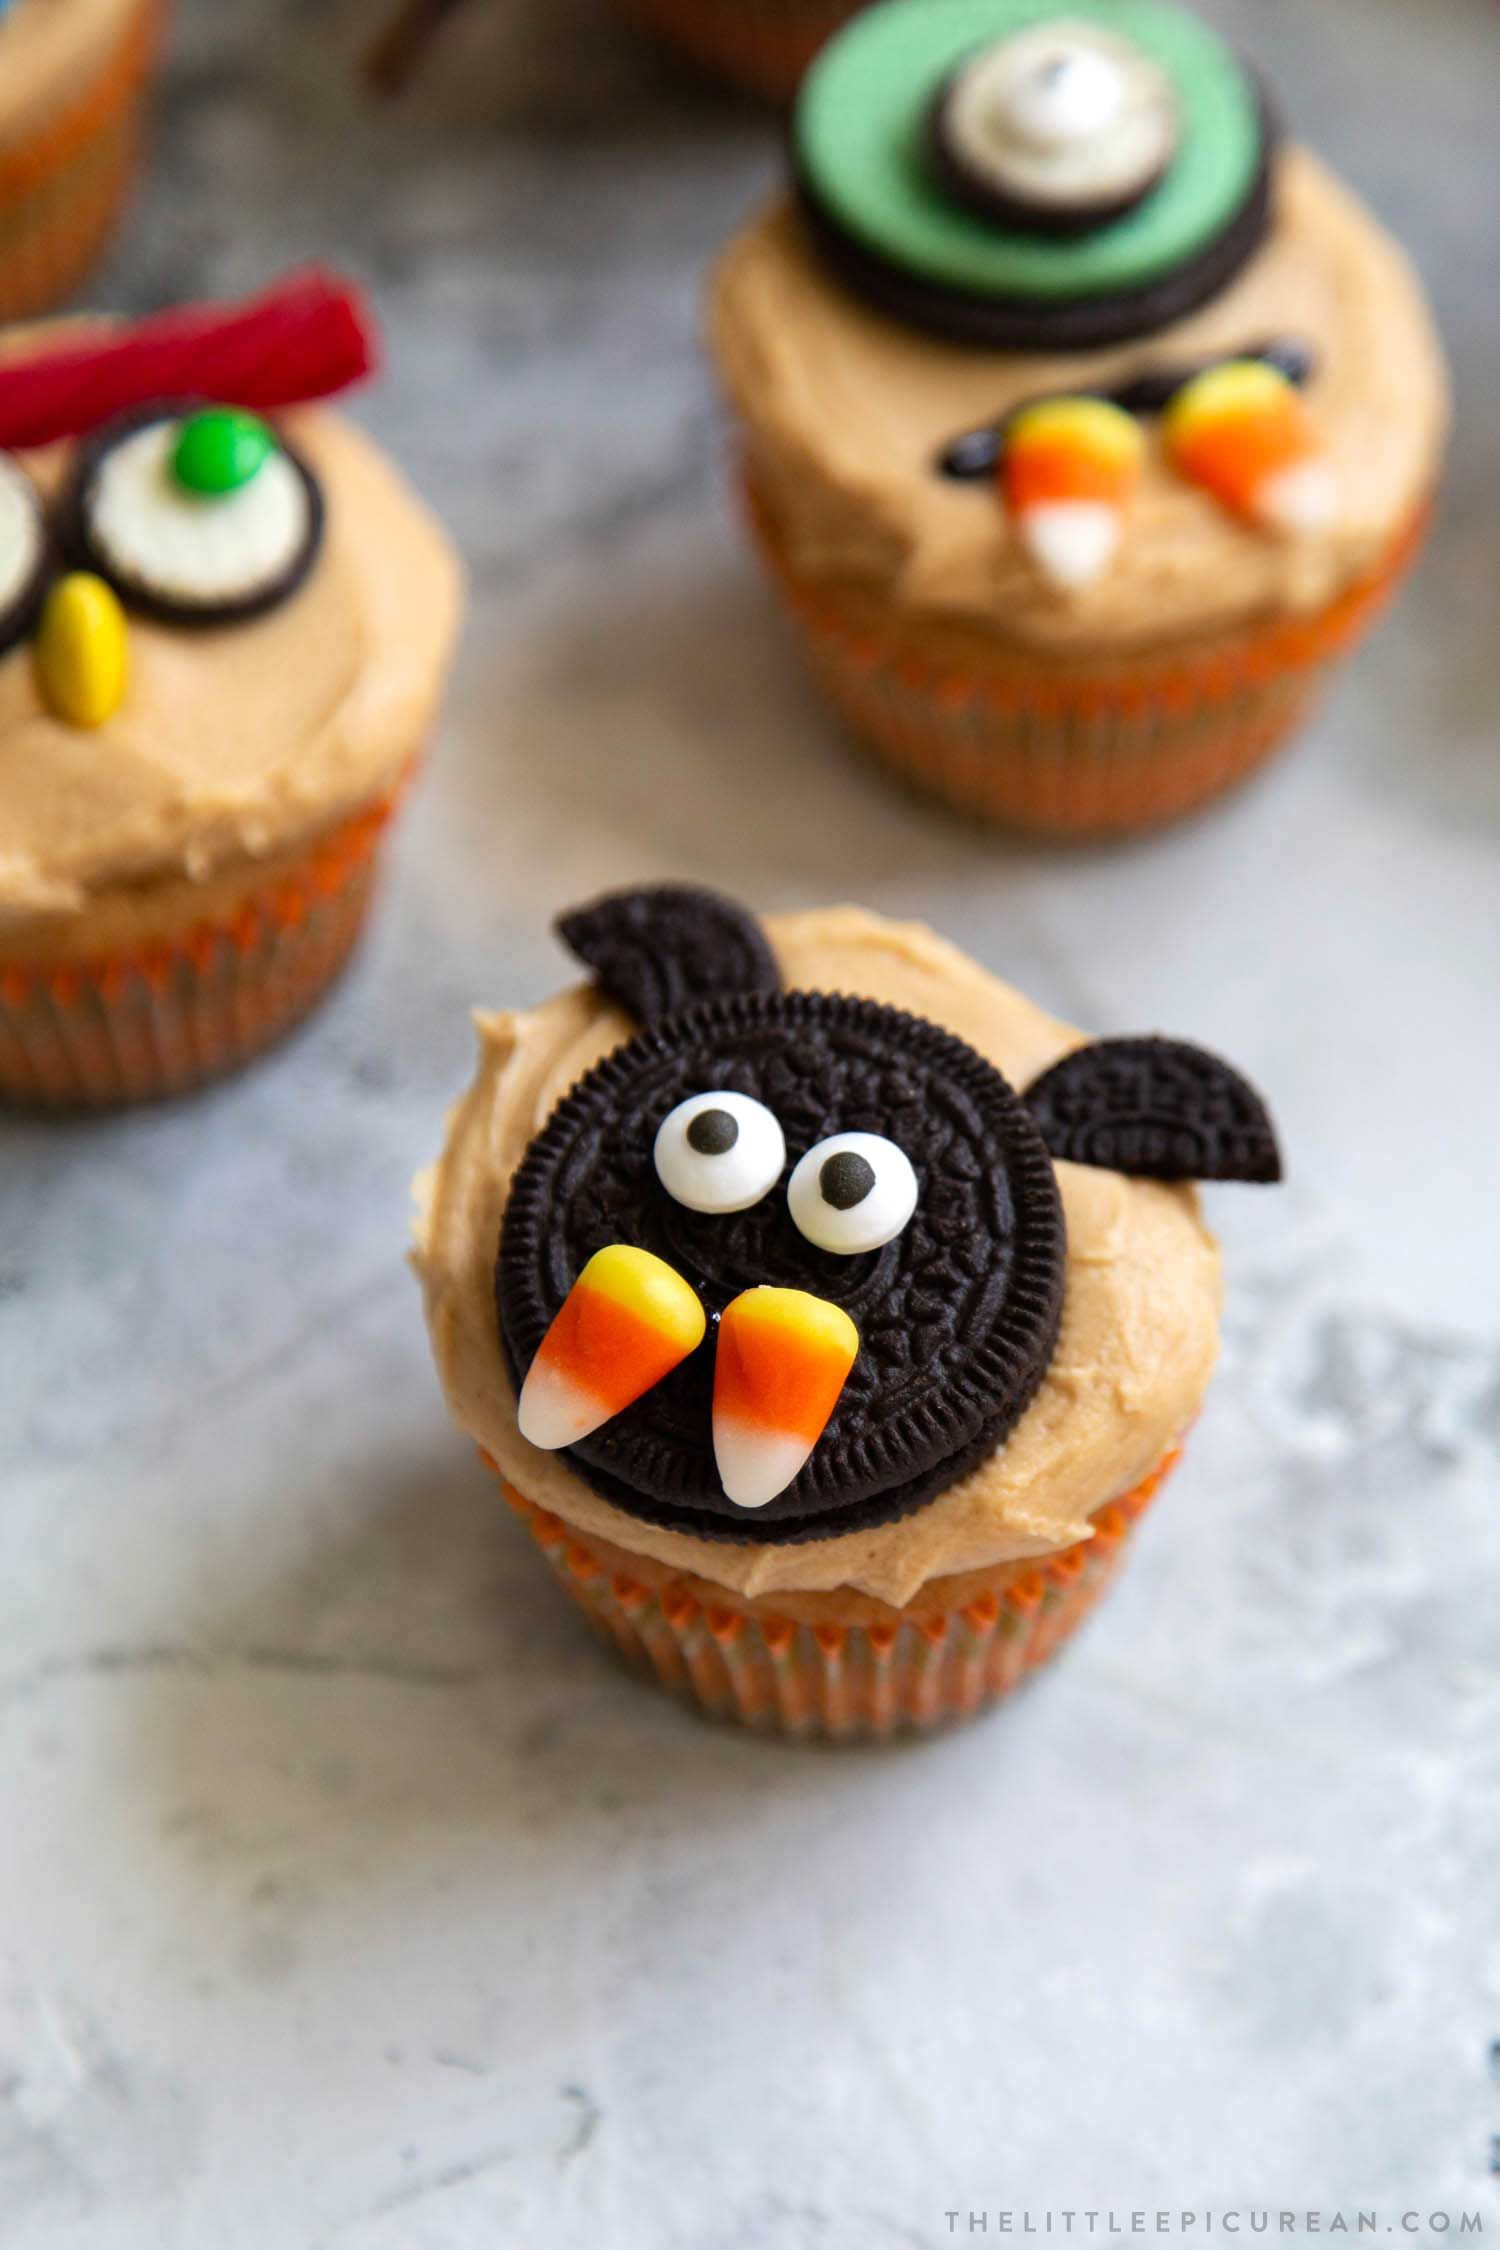 Easy Halloween Cupcakes (Peanut Butter Cupcakes) - The Little Epicurean #halloweencupcakes